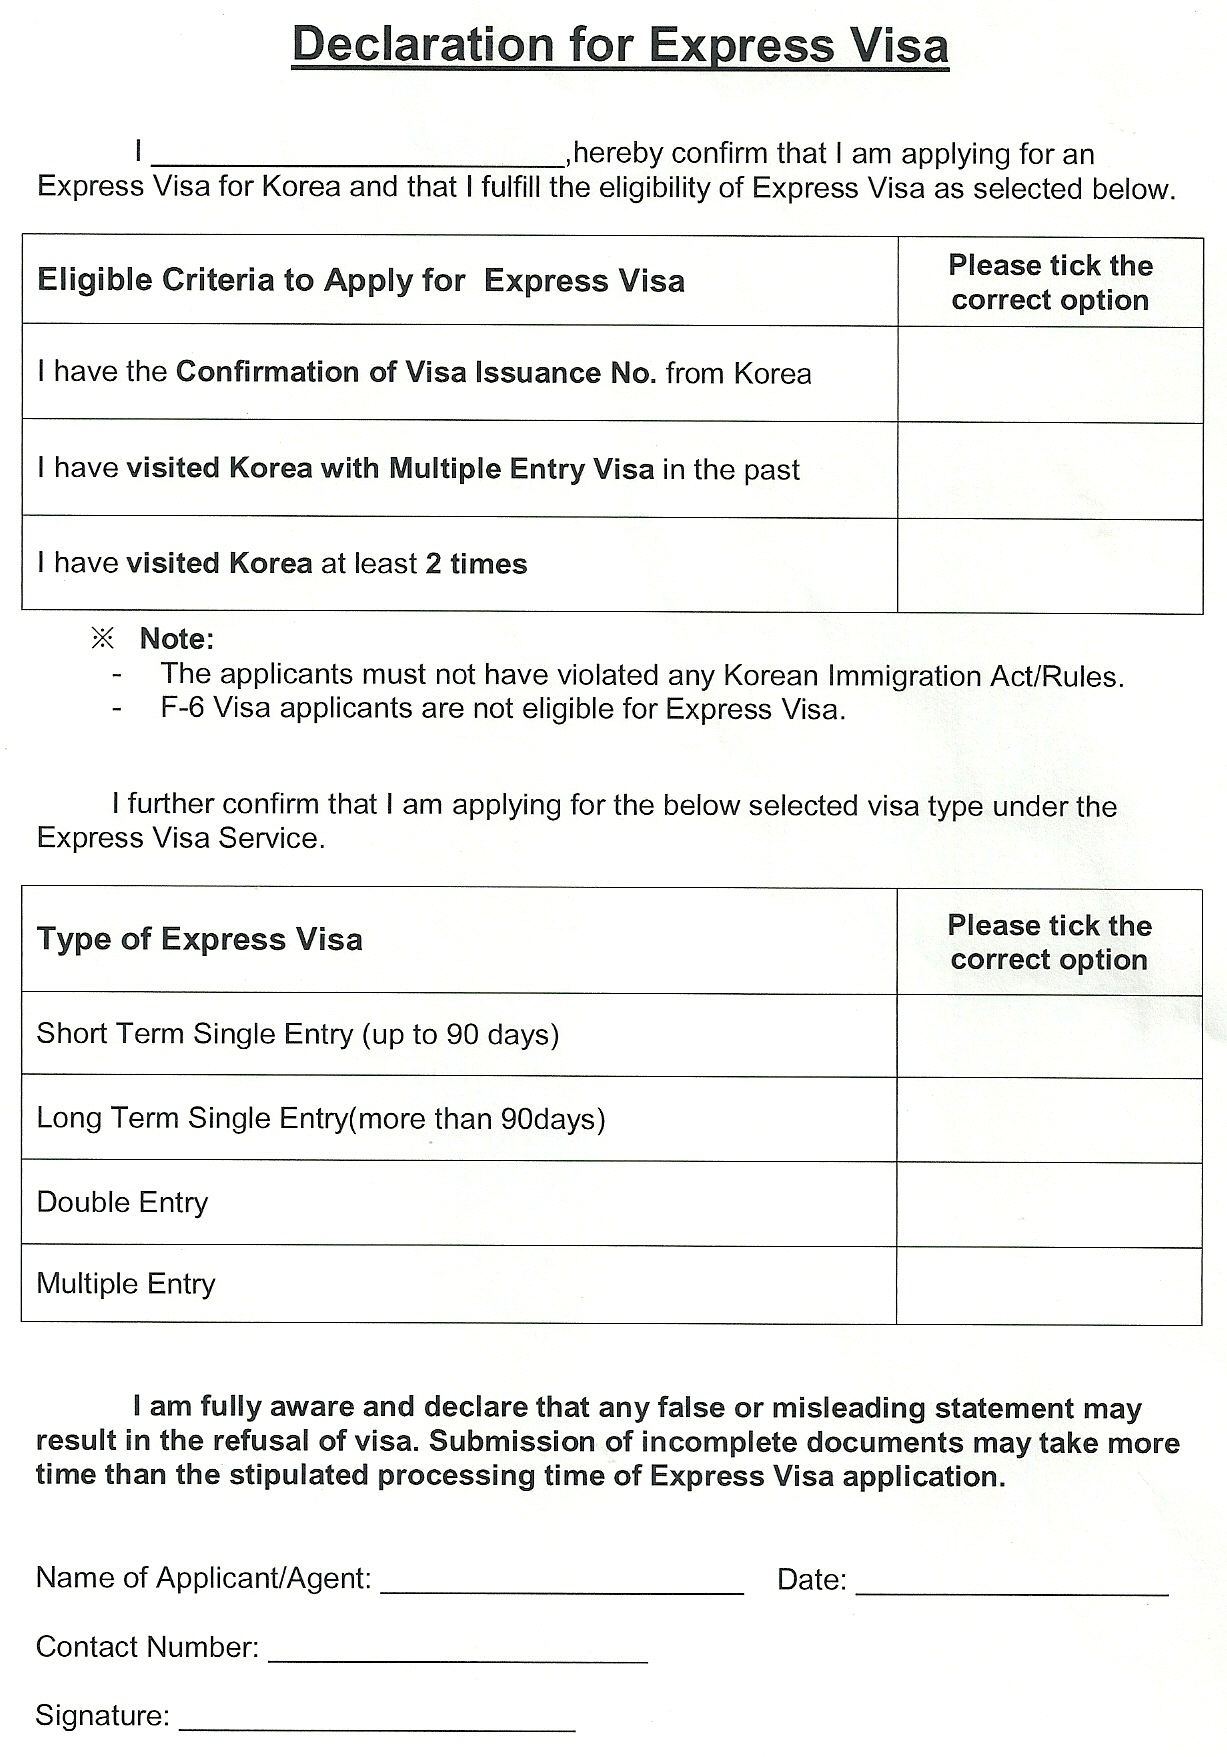 Royal services south korea visa information download urgency form stopboris Choice Image